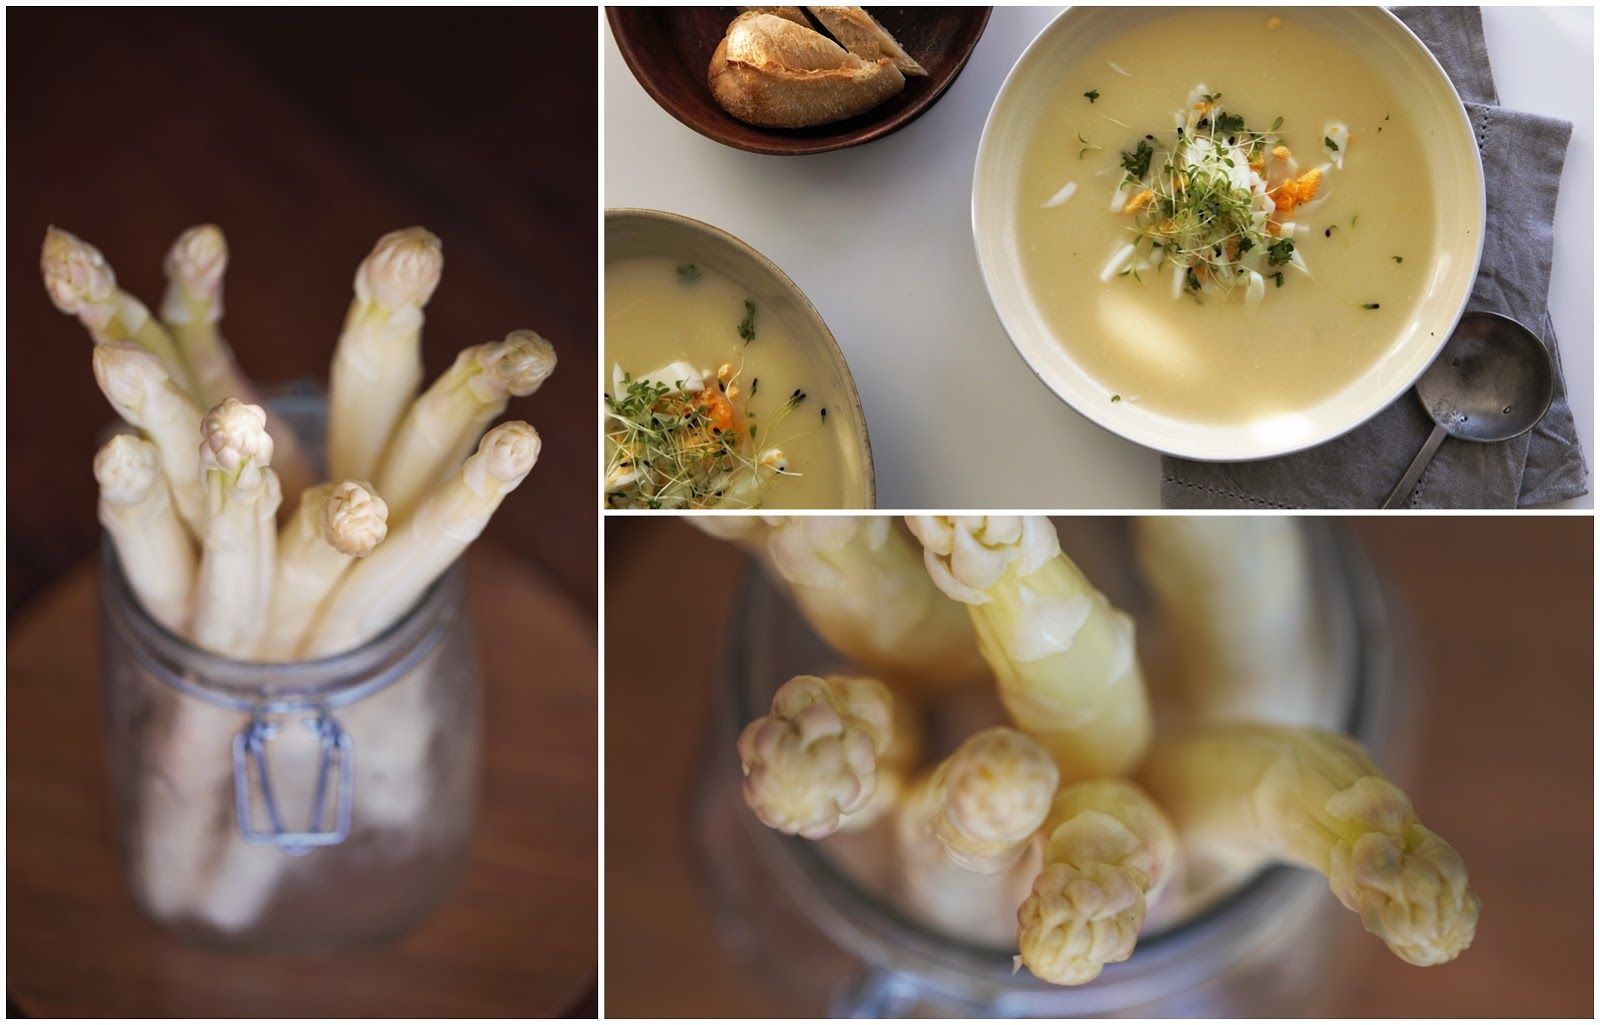 100 decors: WEEKENDS IN THE KITCHEN: ASPARAGUS SOUP